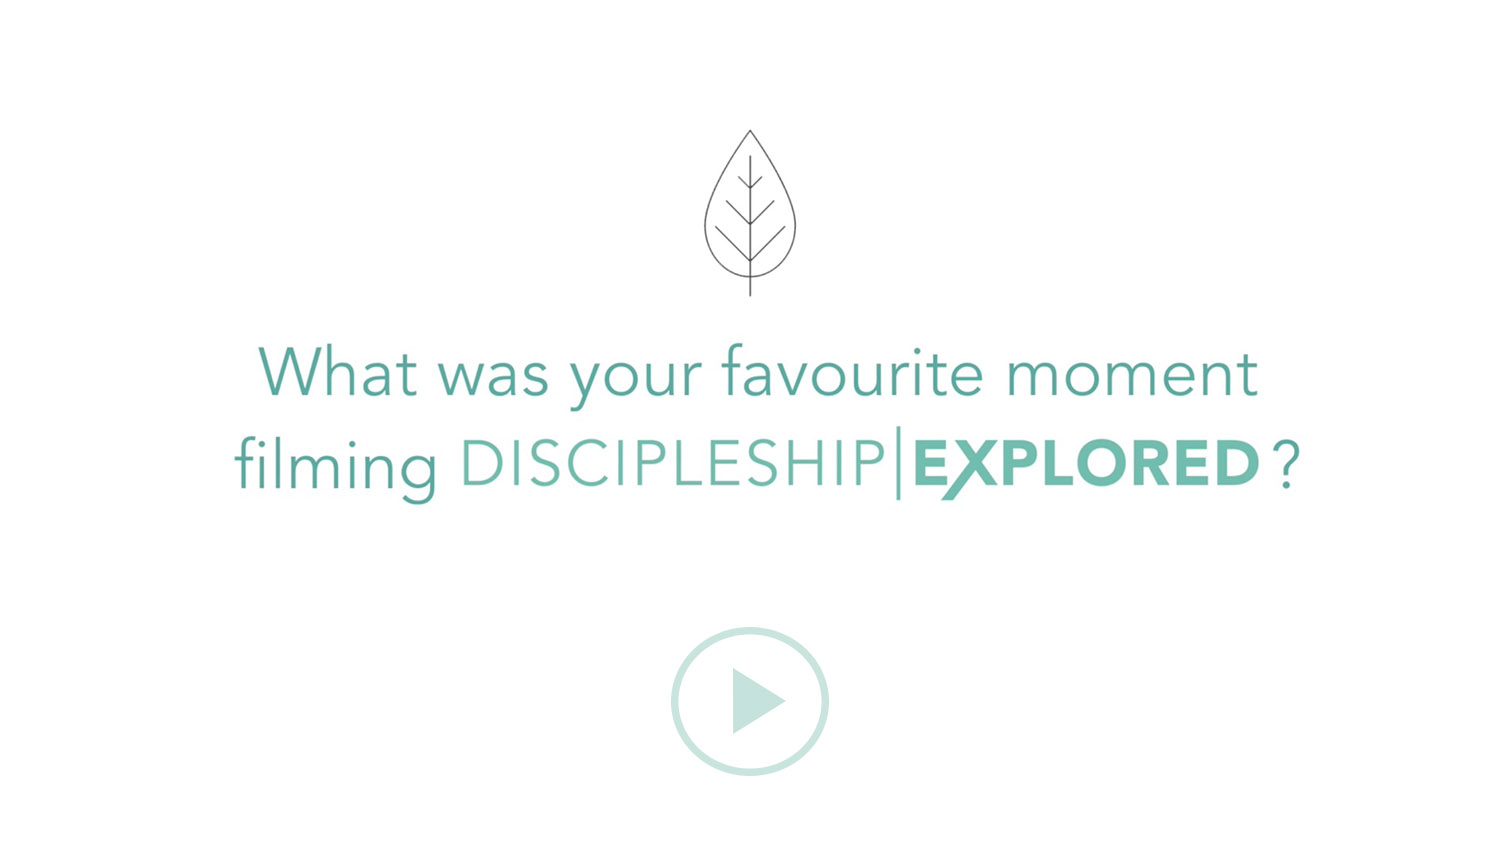 Question 8*What was your favourite moment filming Discipleship Explored?